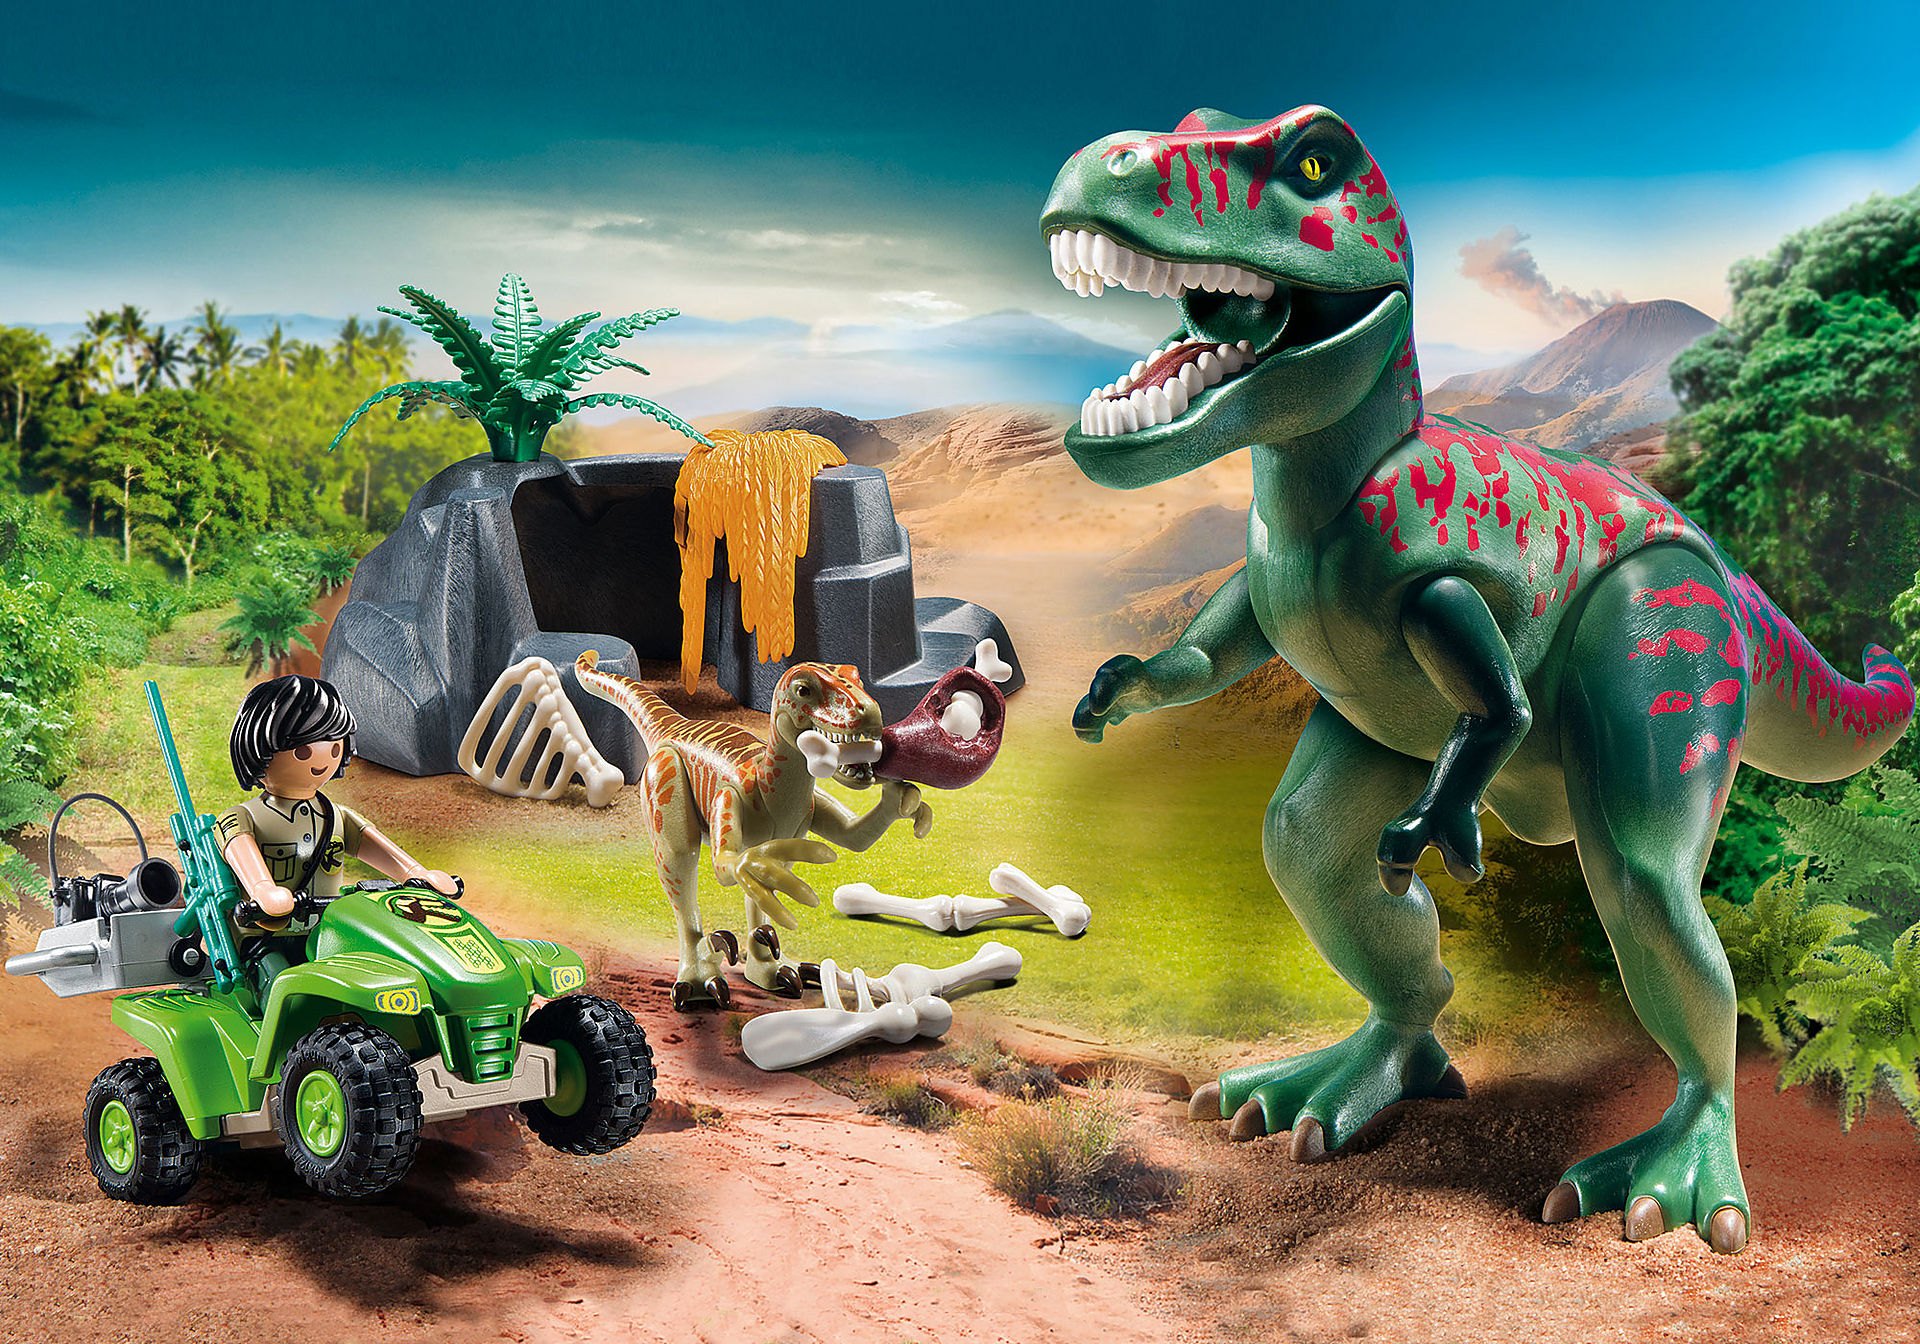 http://media.playmobil.com/i/playmobil/9231_product_detail/Explorer Quad with T-Rex